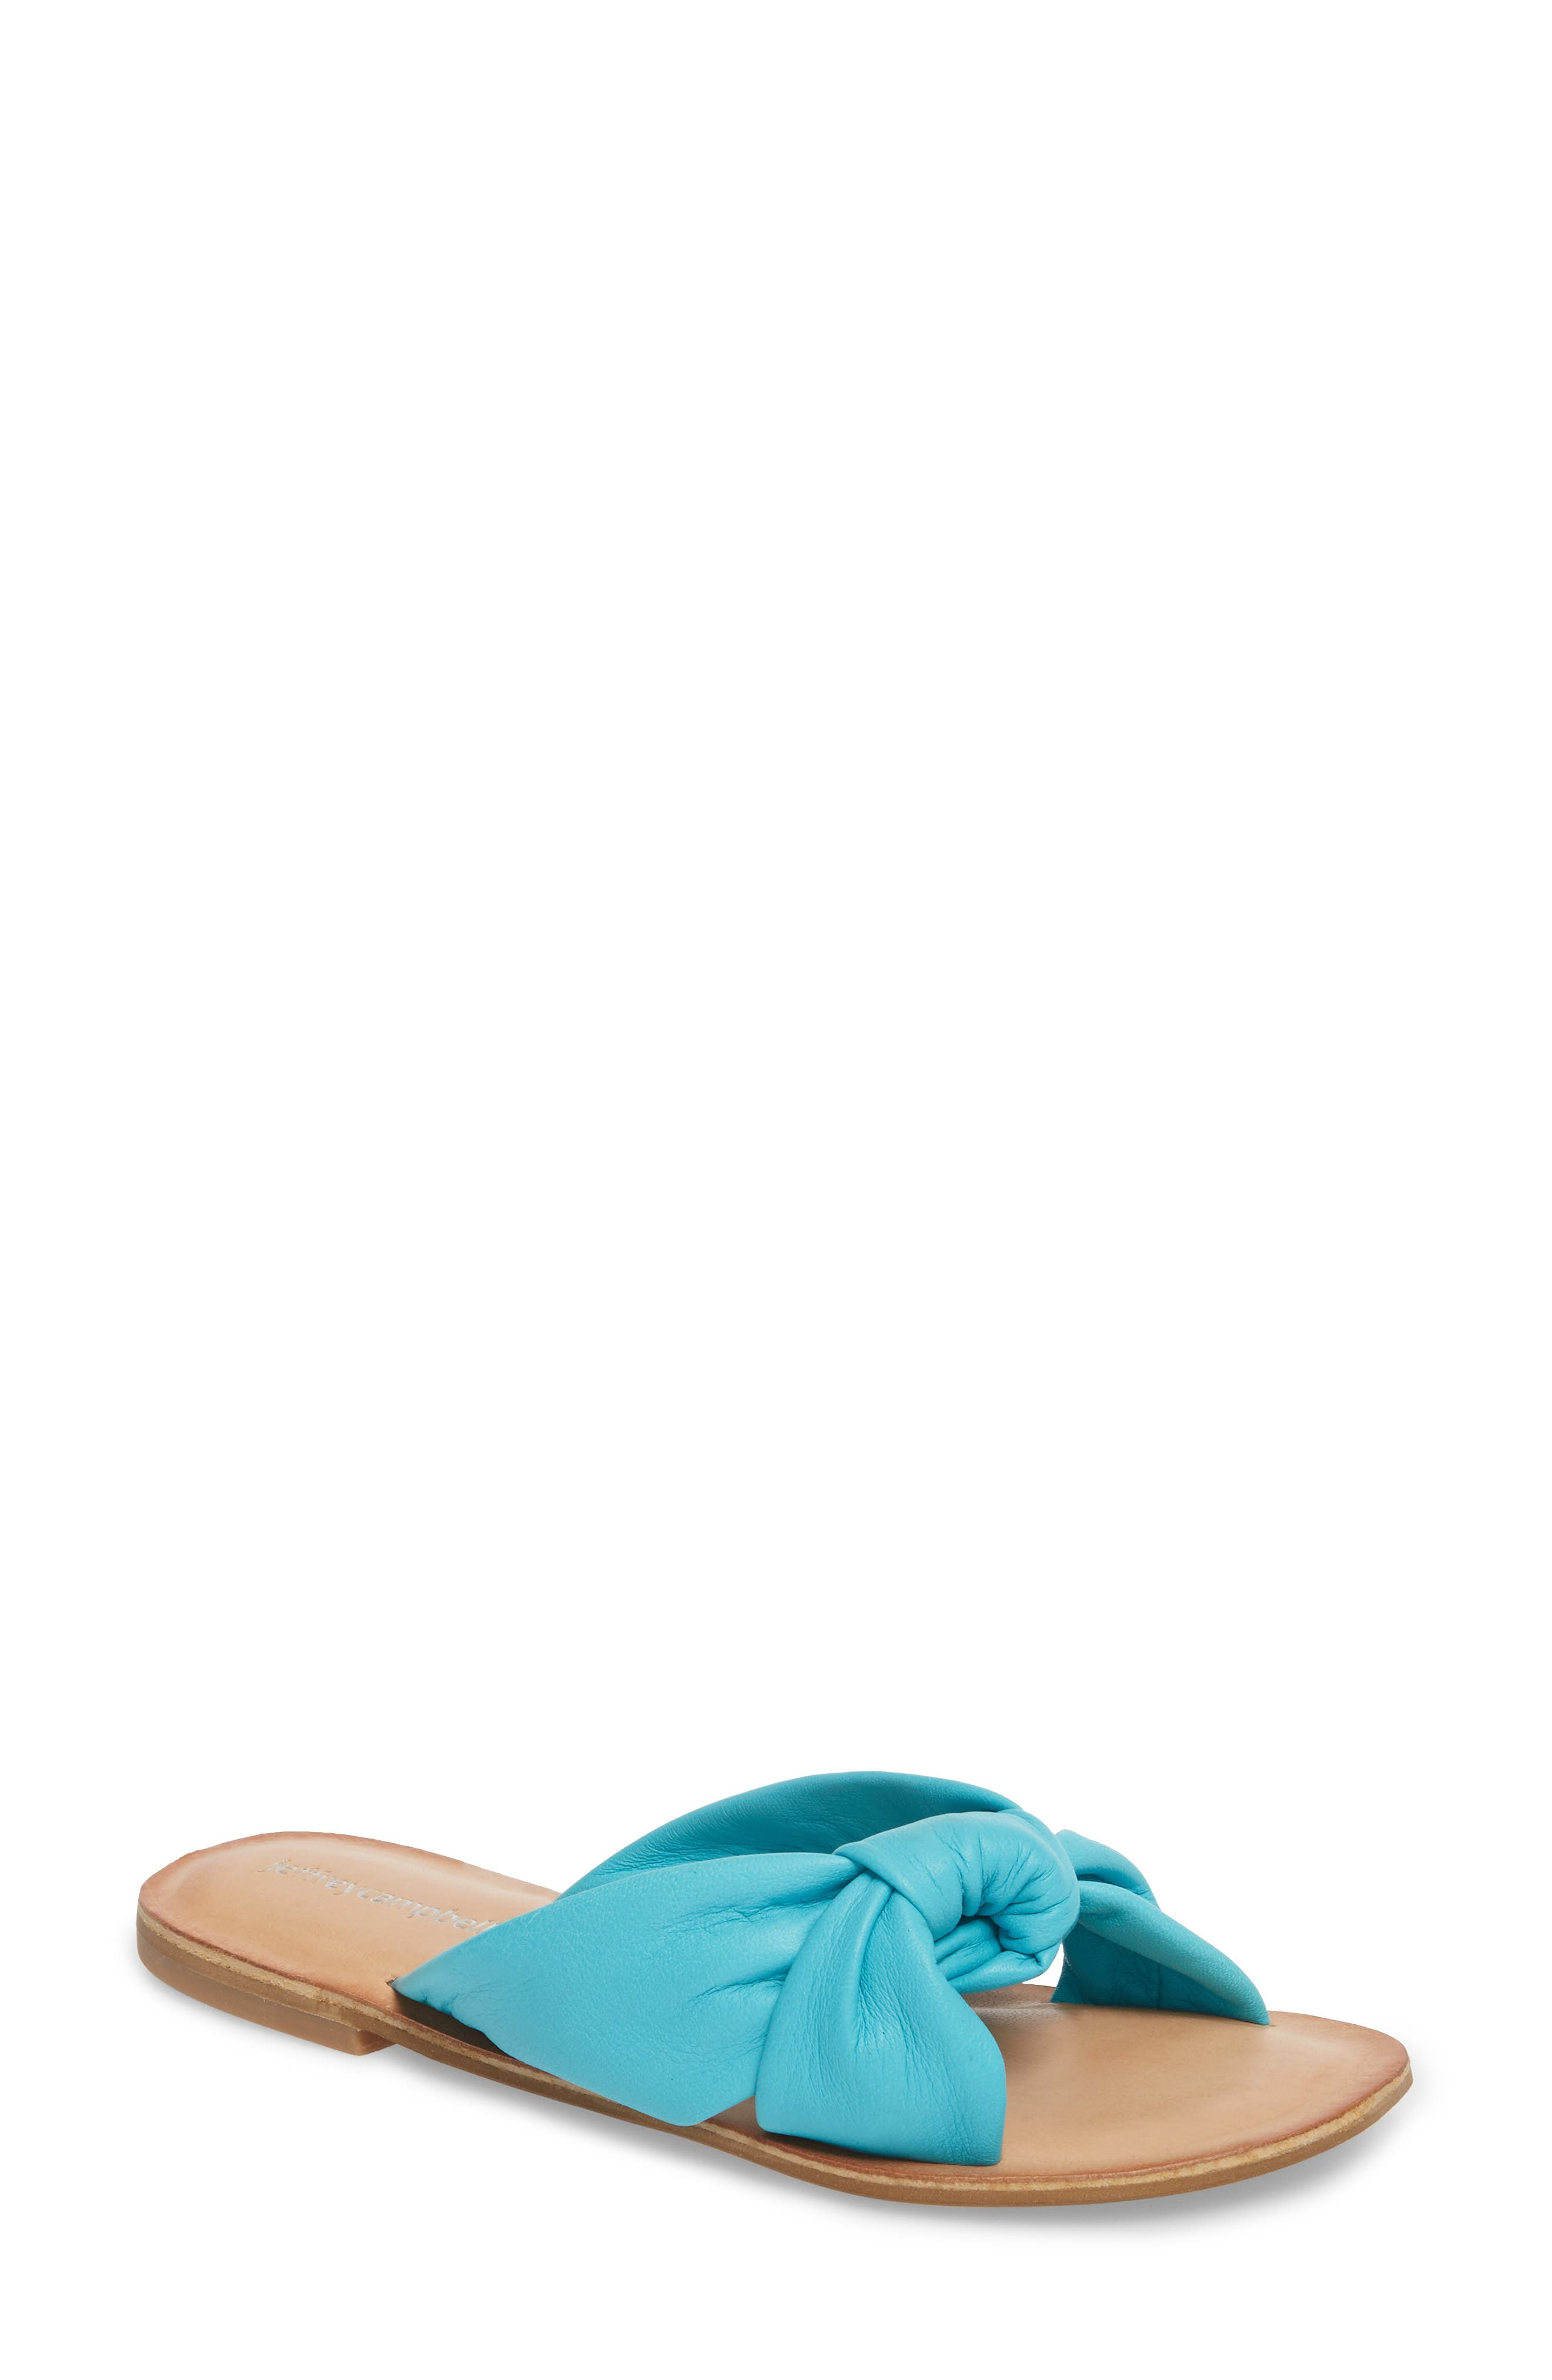 Jeffrey Campbell Zocalo Slide Sandal (Women)